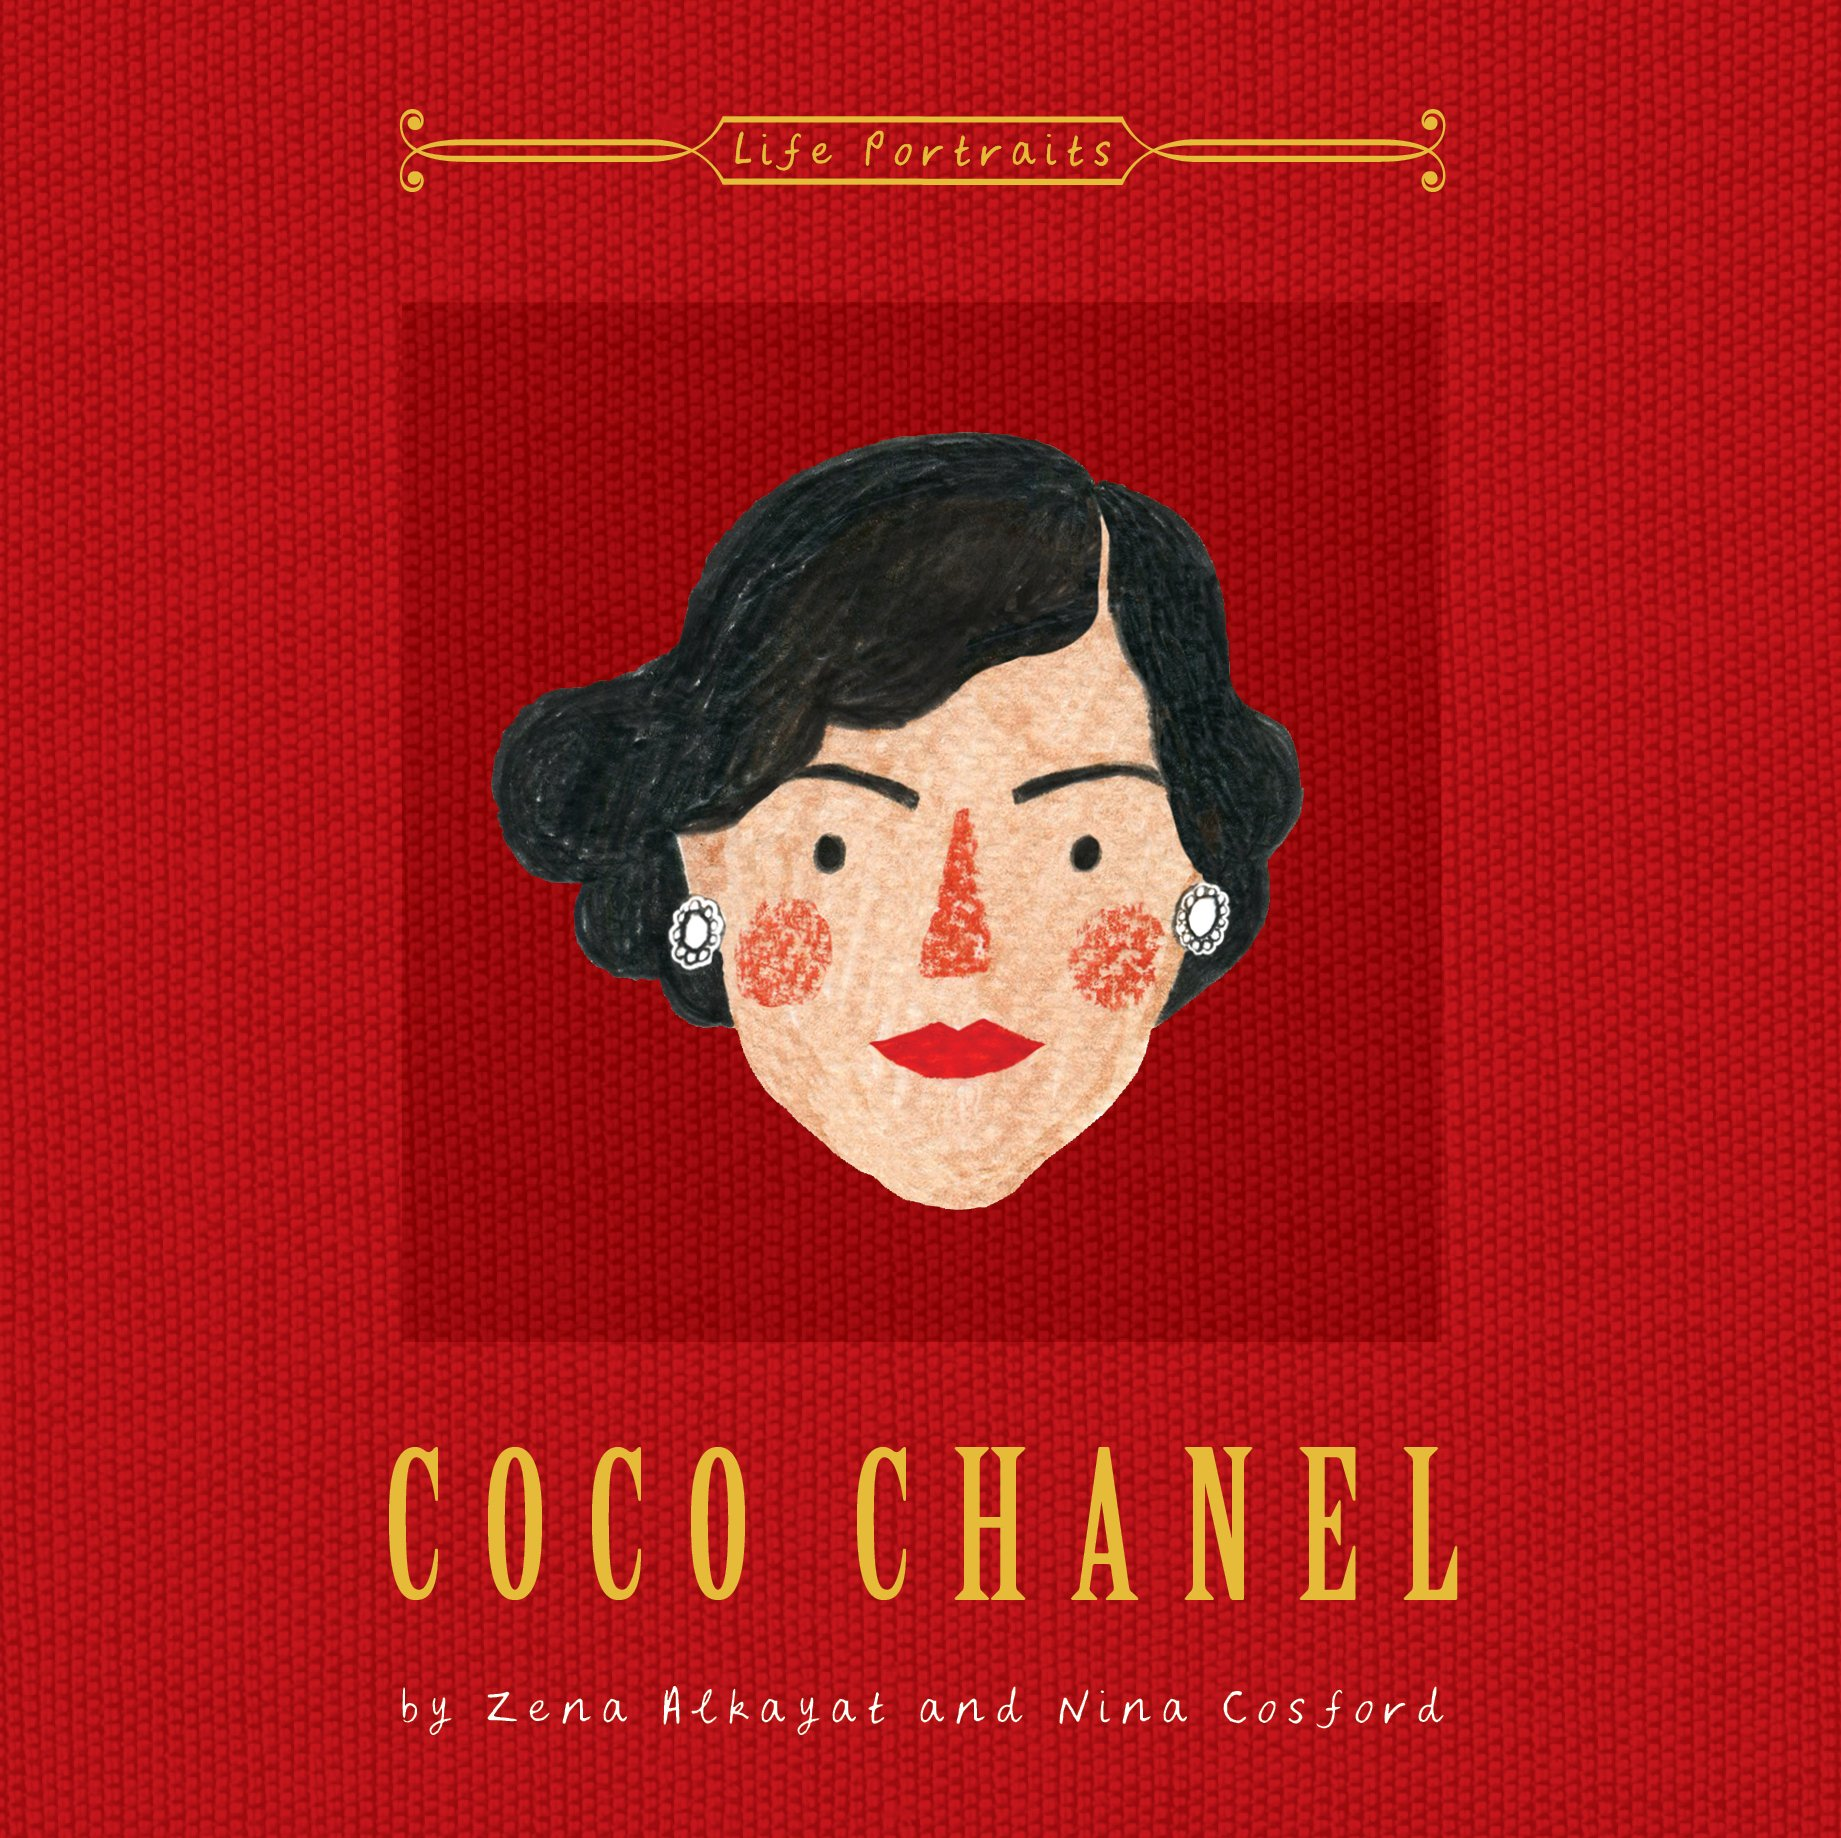 coco chanel charity work